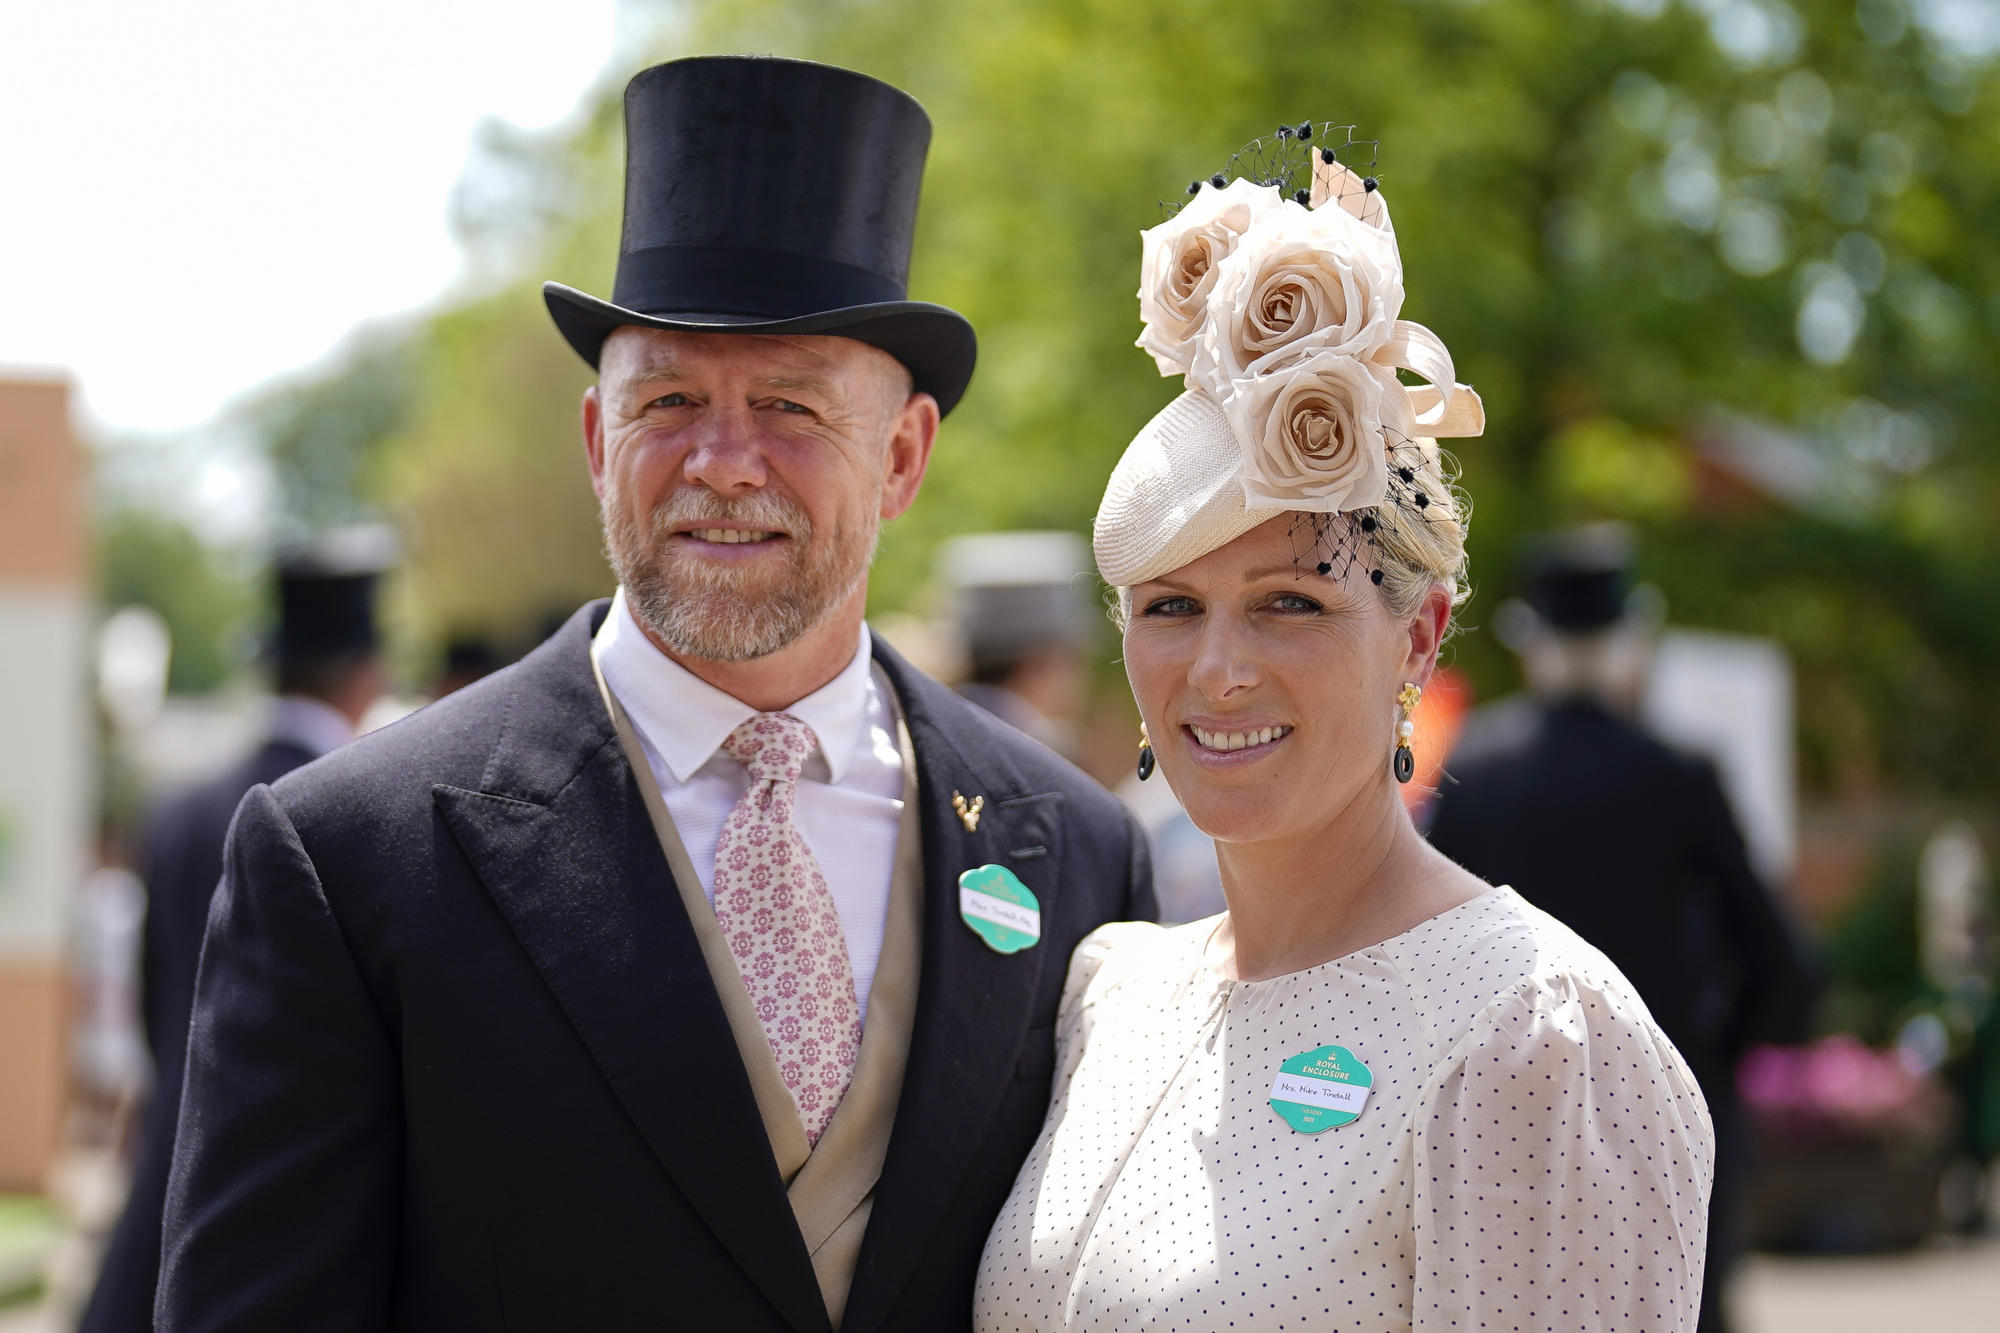 Mike Tindall says 'amazing' Queen always made him feel part of Royal Family